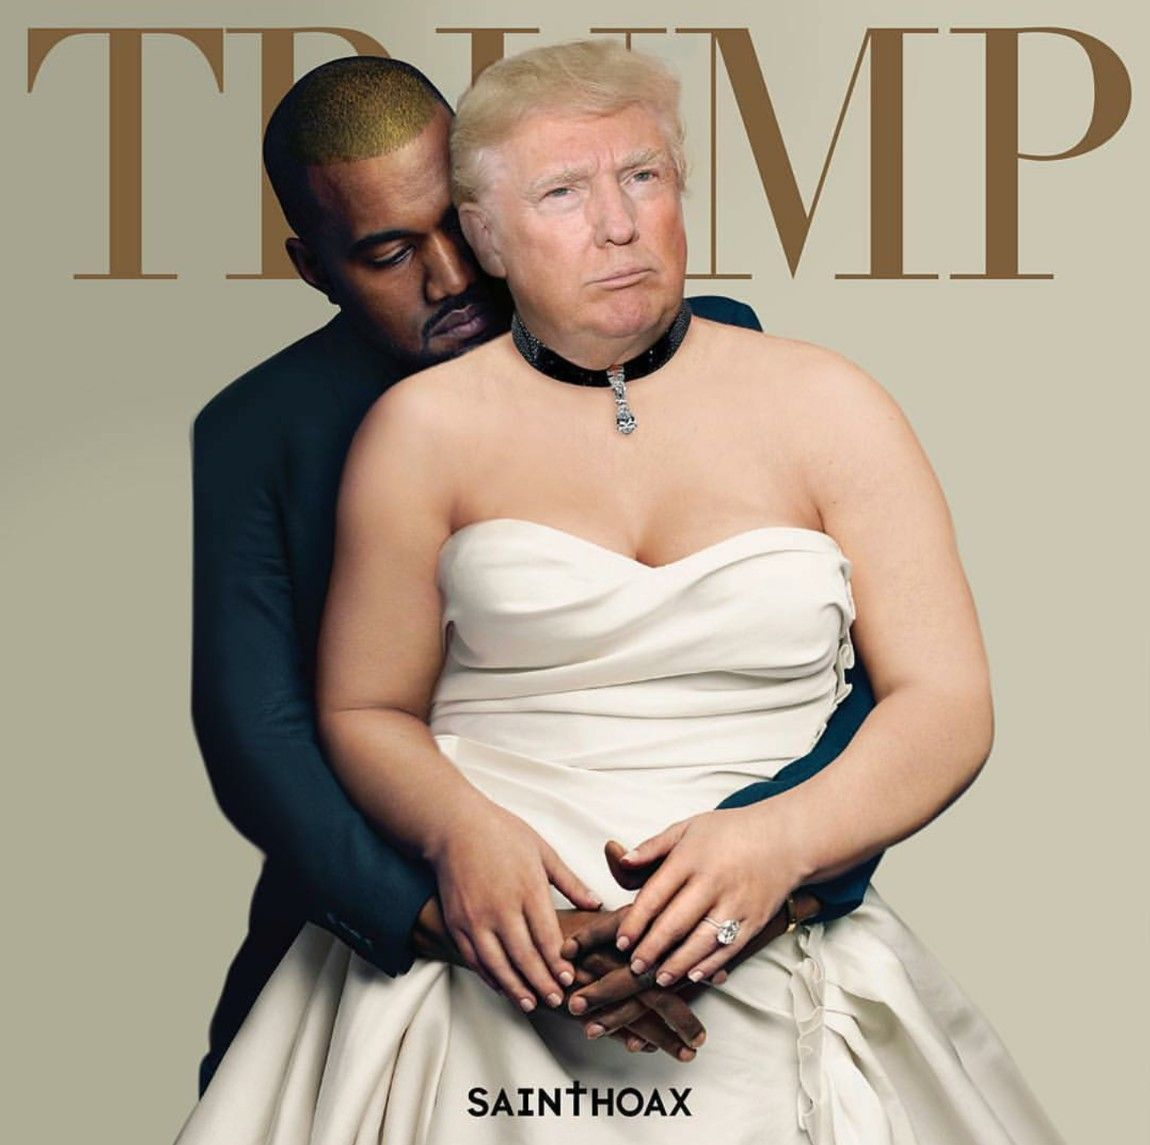 Awesome 25 Hilarious Memes That Are Trending All Over The Internet Kanye West Funny Trump Humor Kanye West